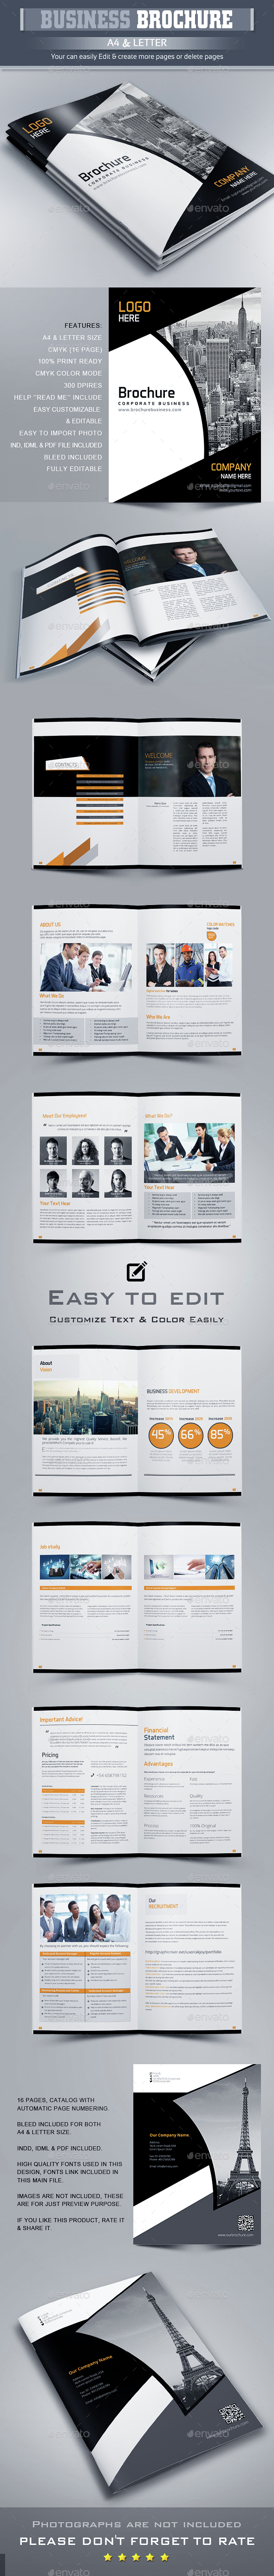 Business Brochure Template InDesign INDD. Download here: http ...